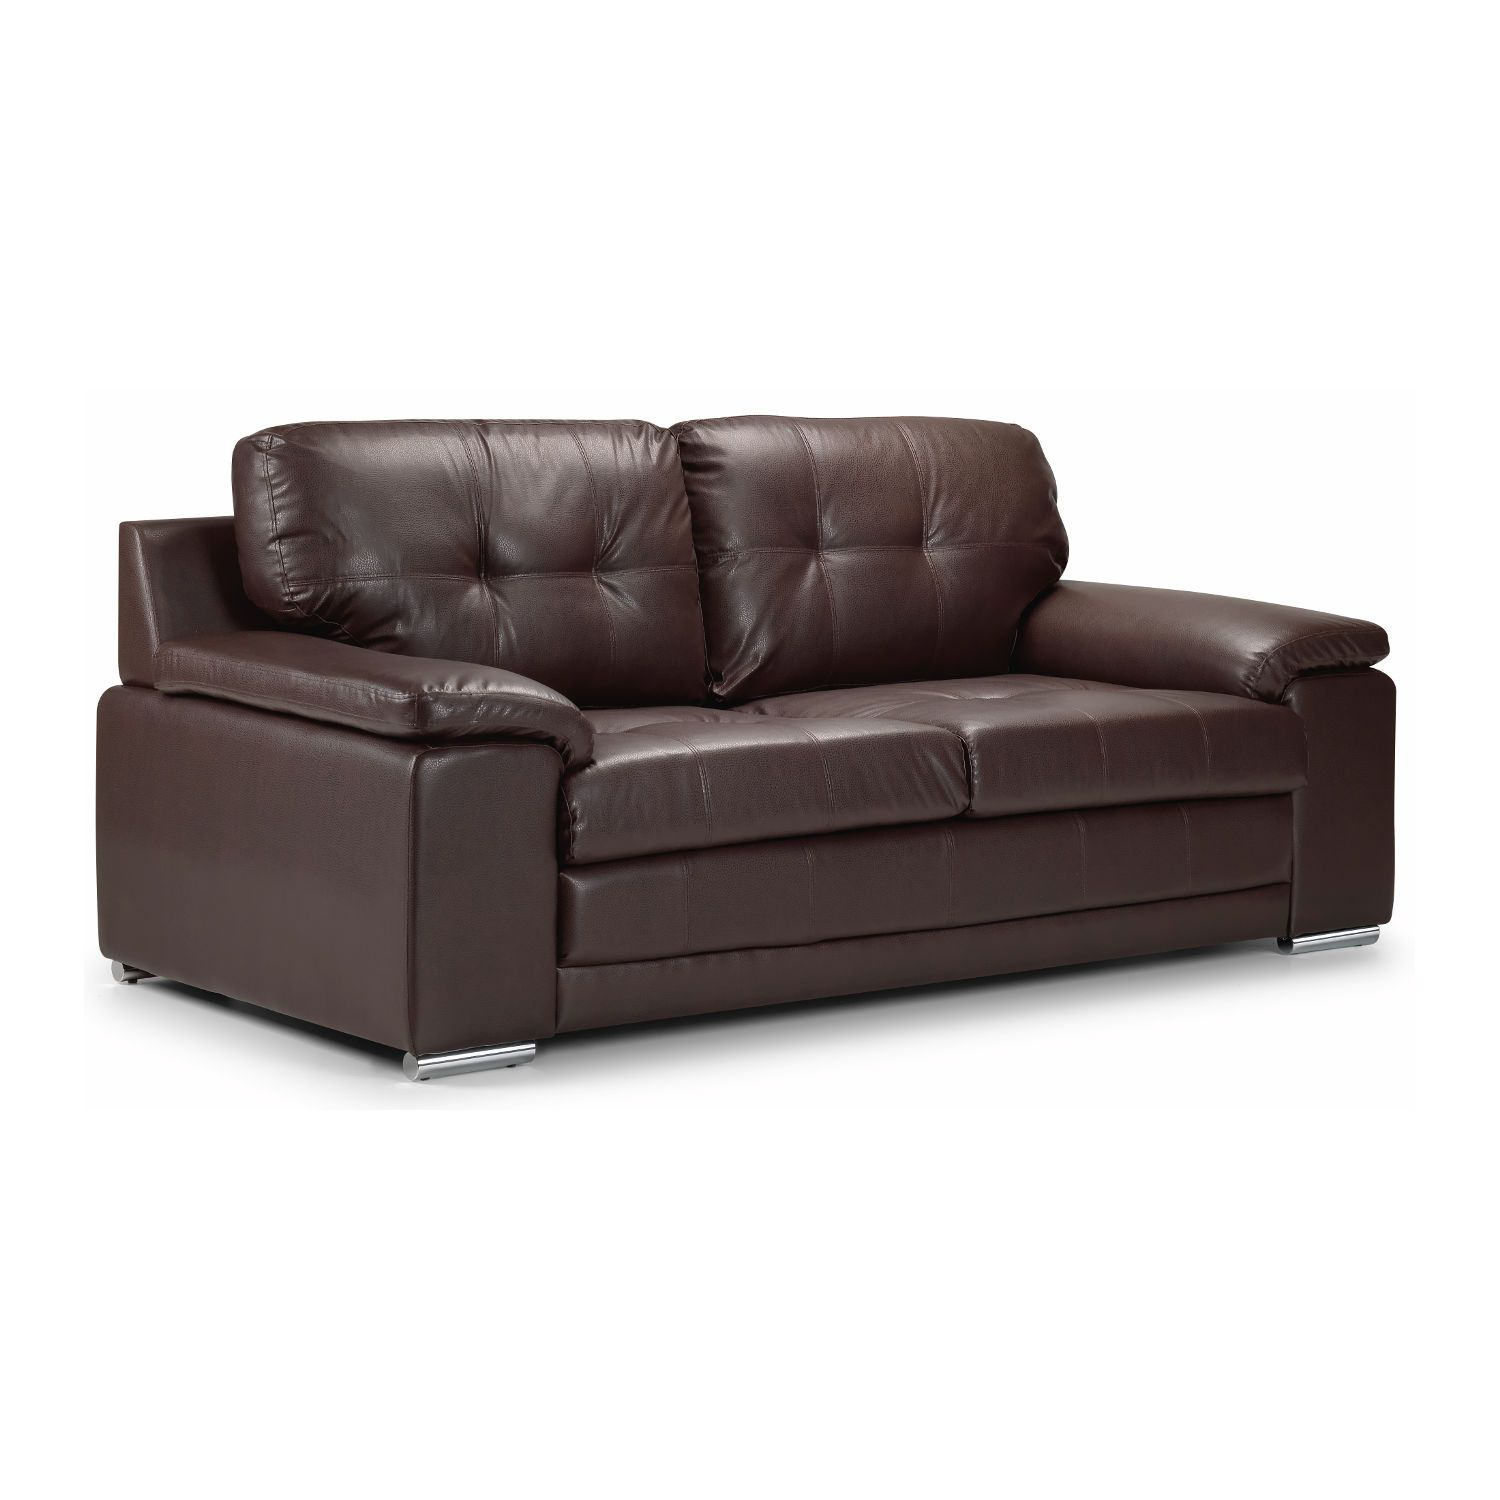 Dexter 2 Seater Bonded Leather Sofa Bed Guest Spare Sleeper Bed Futon Sofa Ebay Brown Leather Sofa Bed Leather Sofa Bed Best Leather Sofa